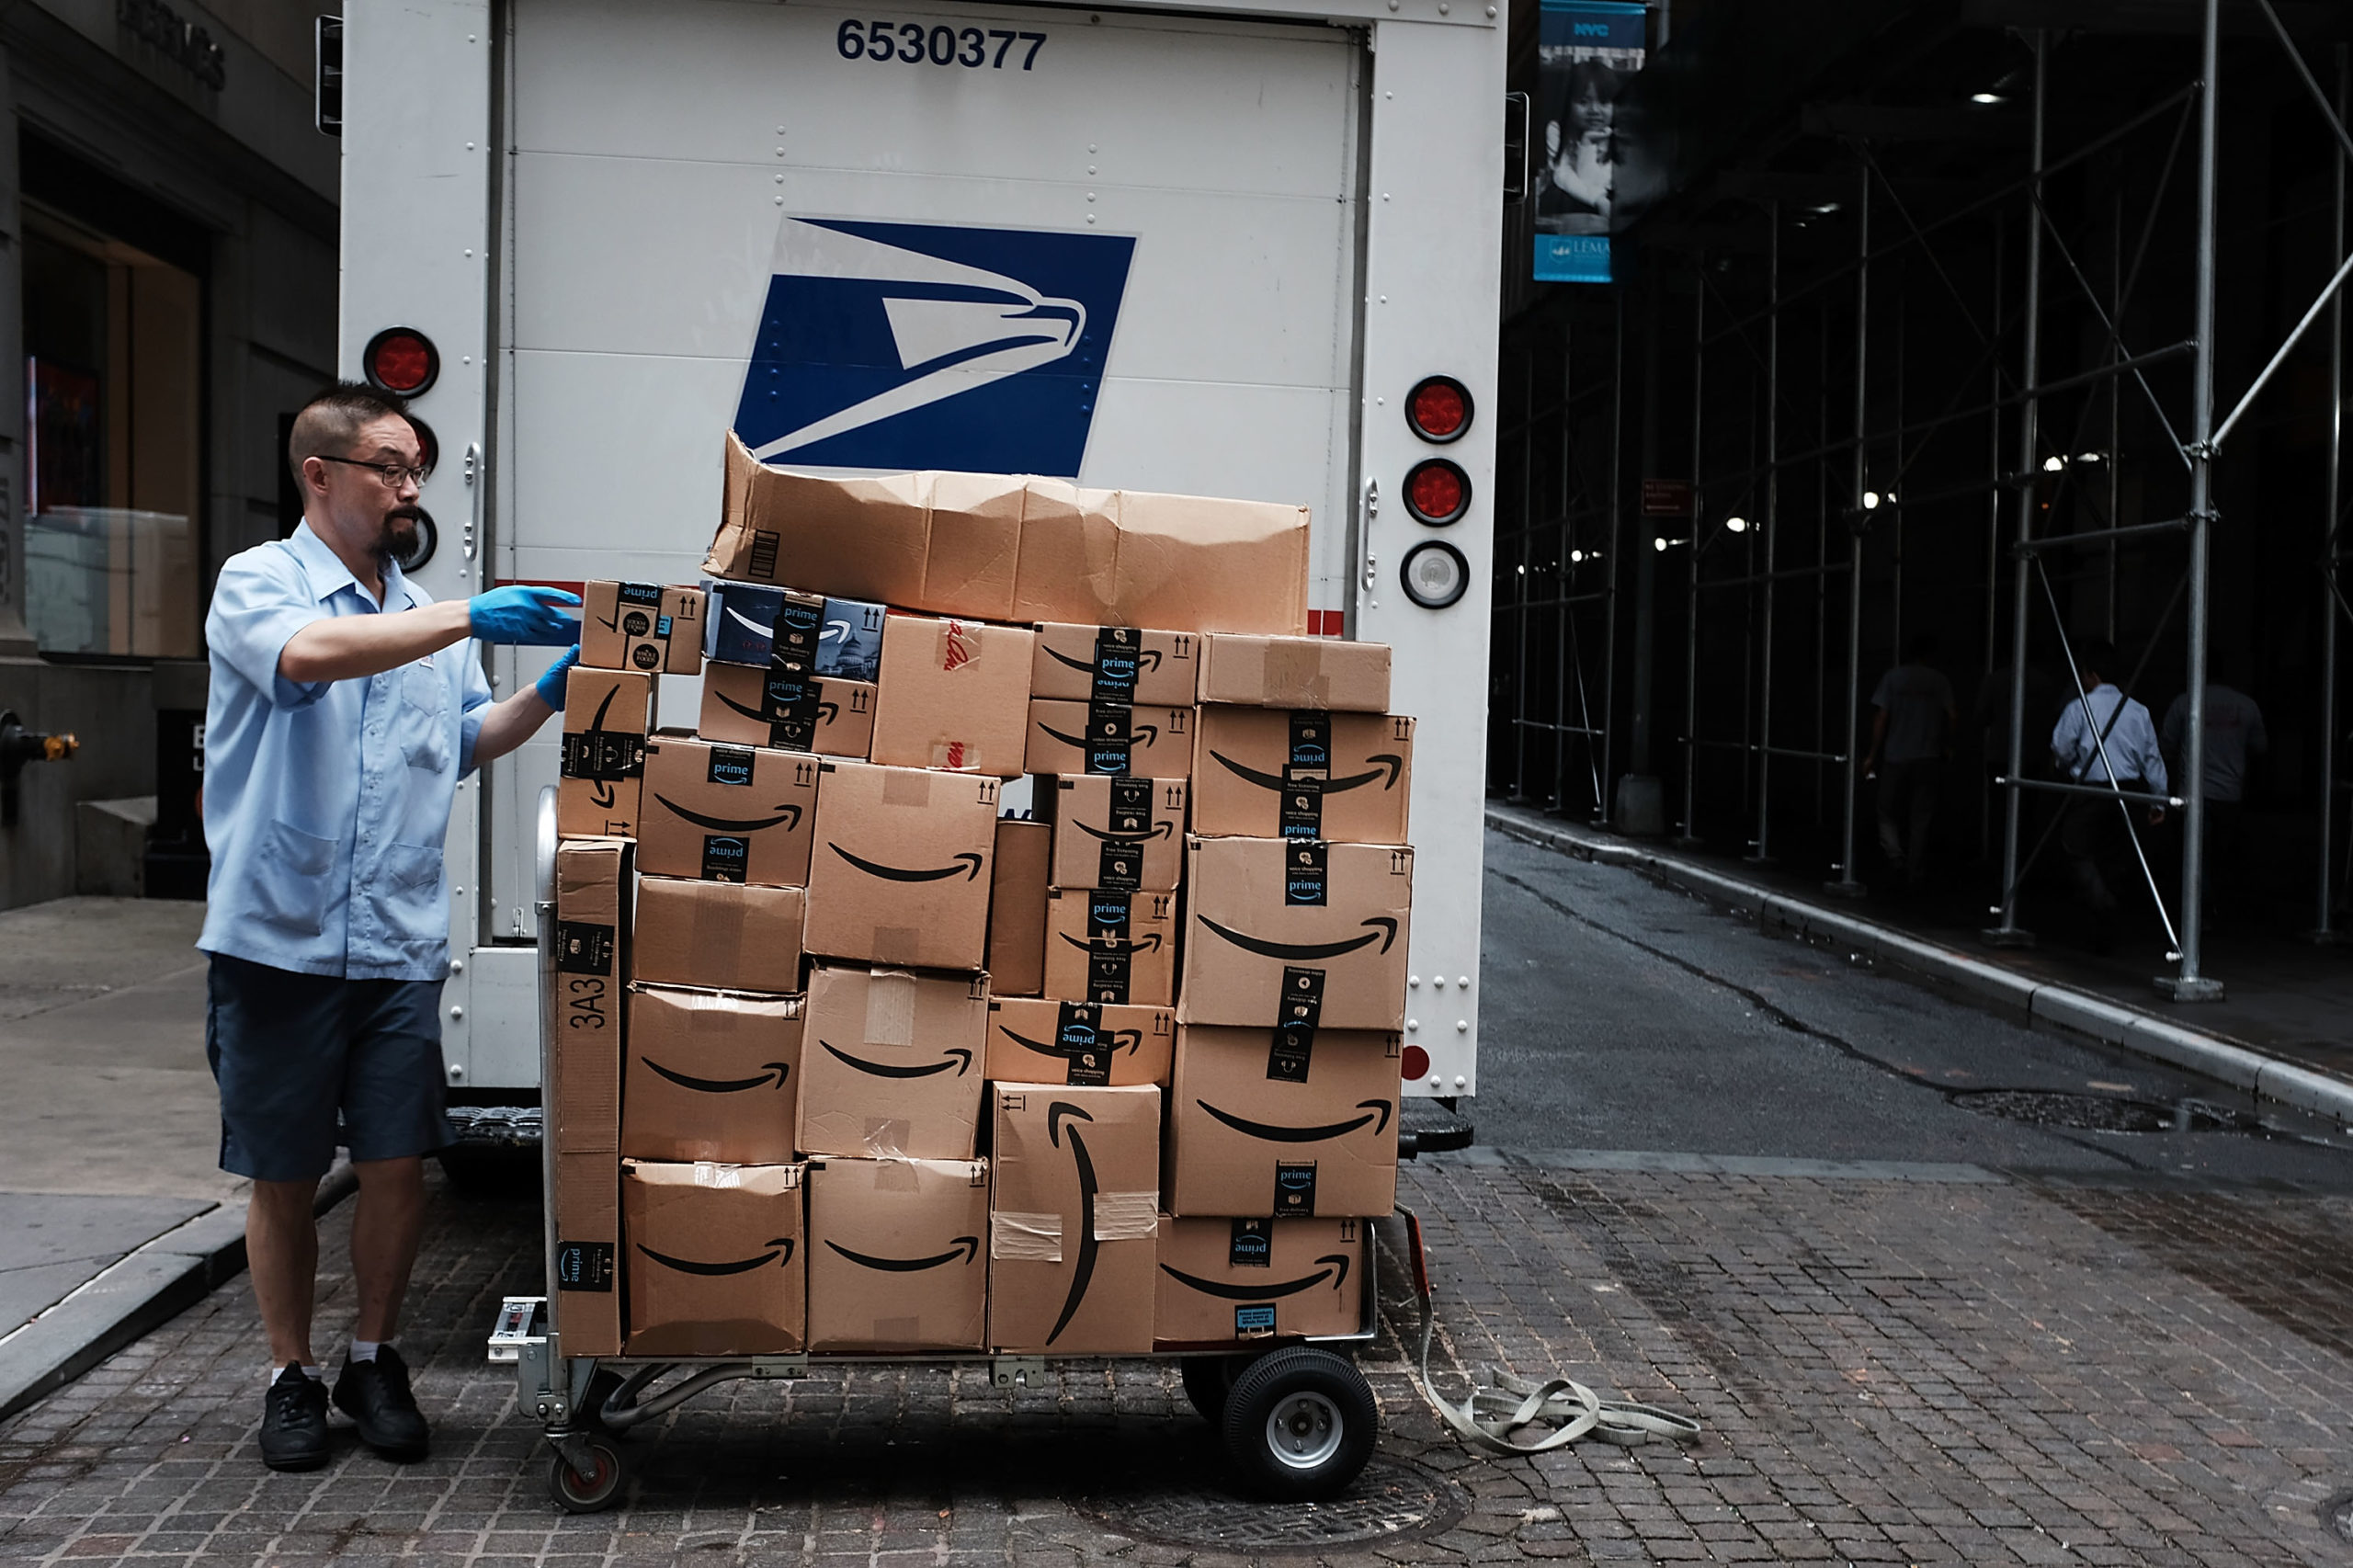 A postal worker delivers Amazon boxes outside of the New York Stock Exchange in New York City. (Spencer Platt/Getty Images)